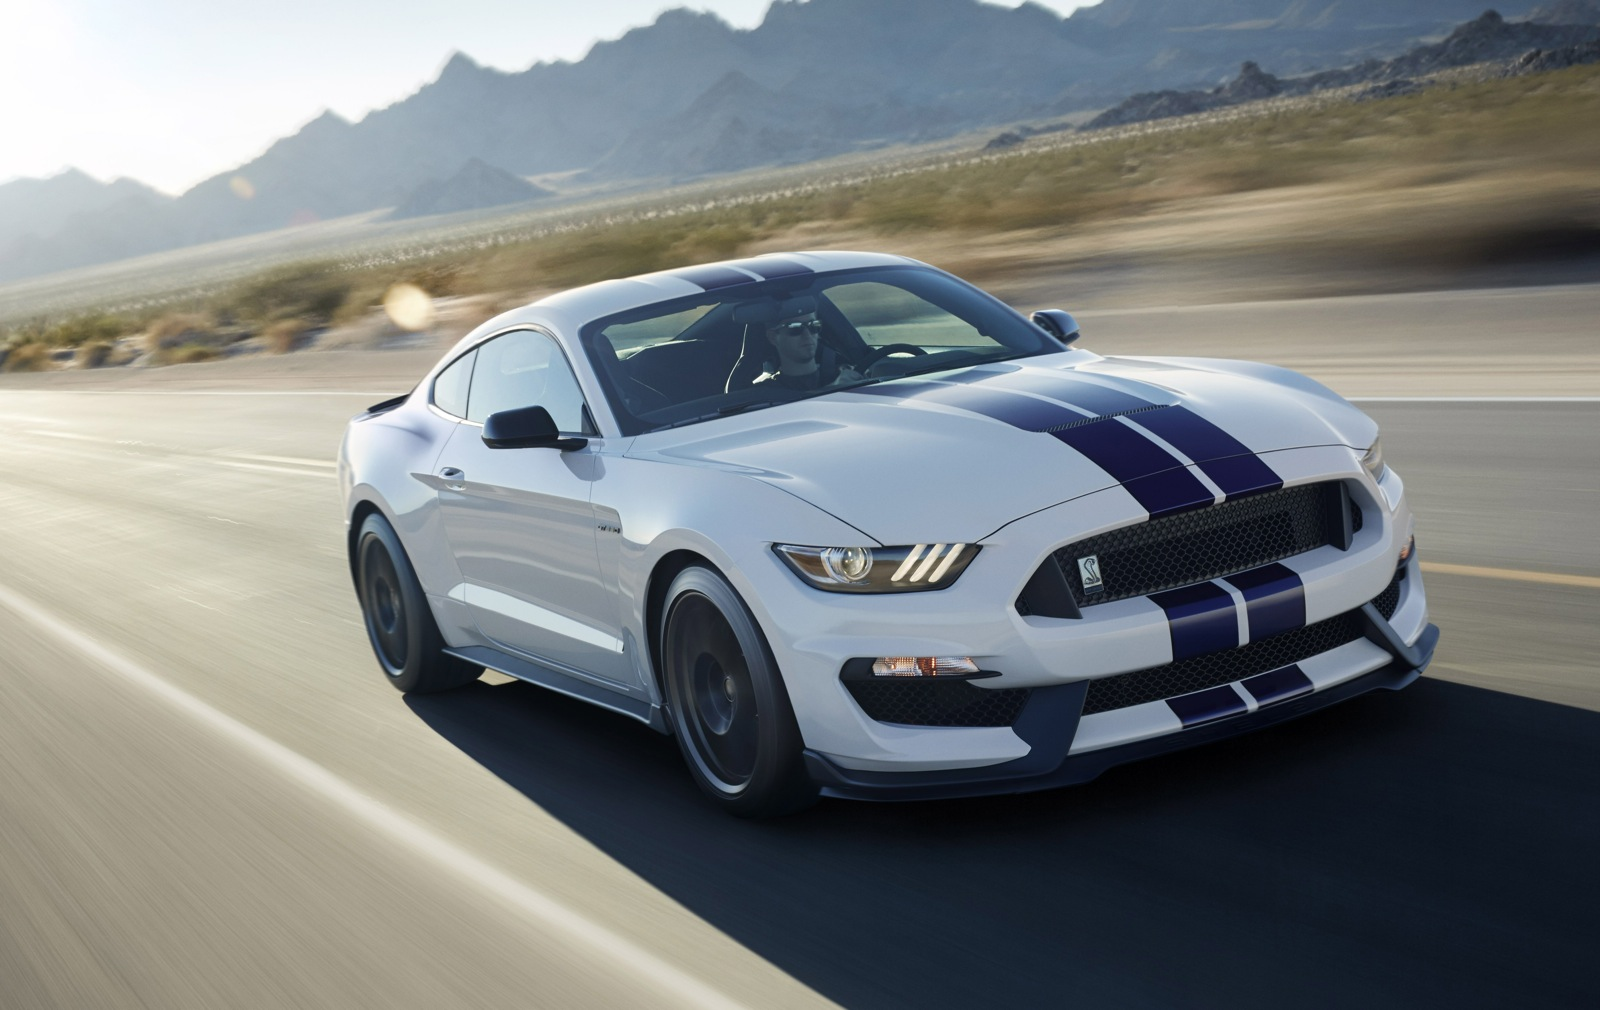 2015 shelby mustang gt350 drivingjpg - Ford Mustang Gt 2015 White